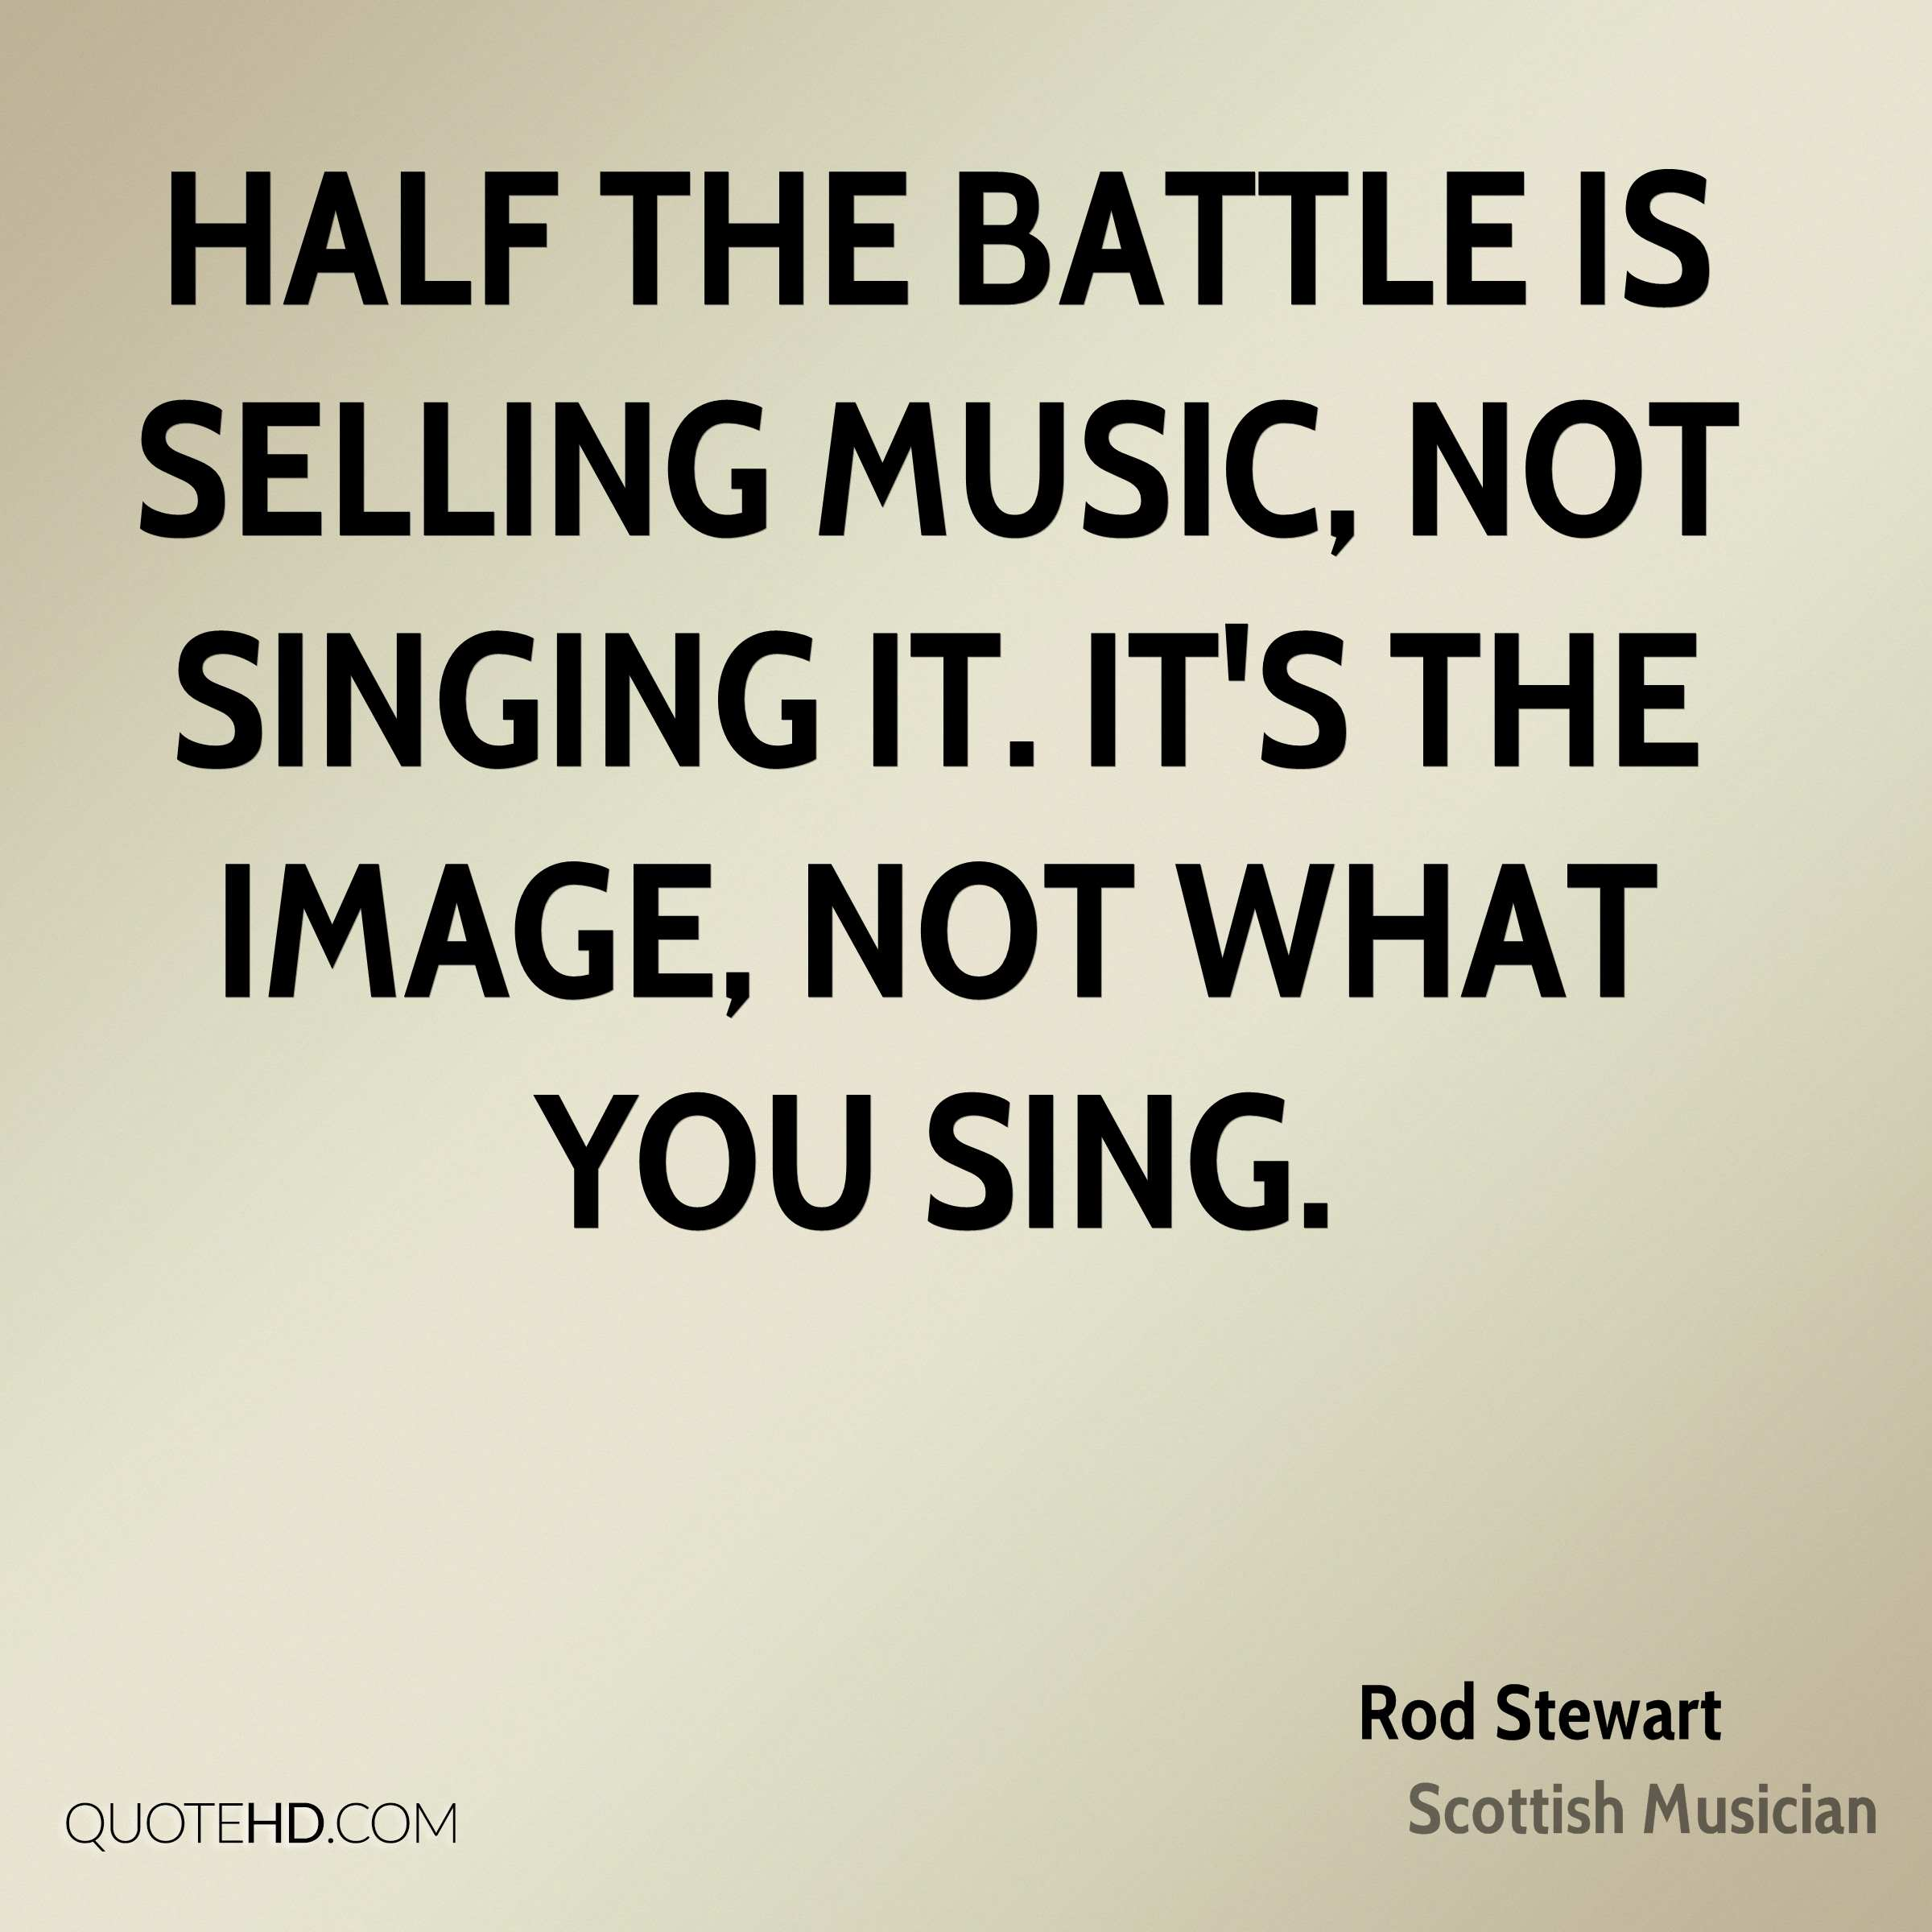 Half the battle is selling music, not singing it. It's the image, not what you sing.